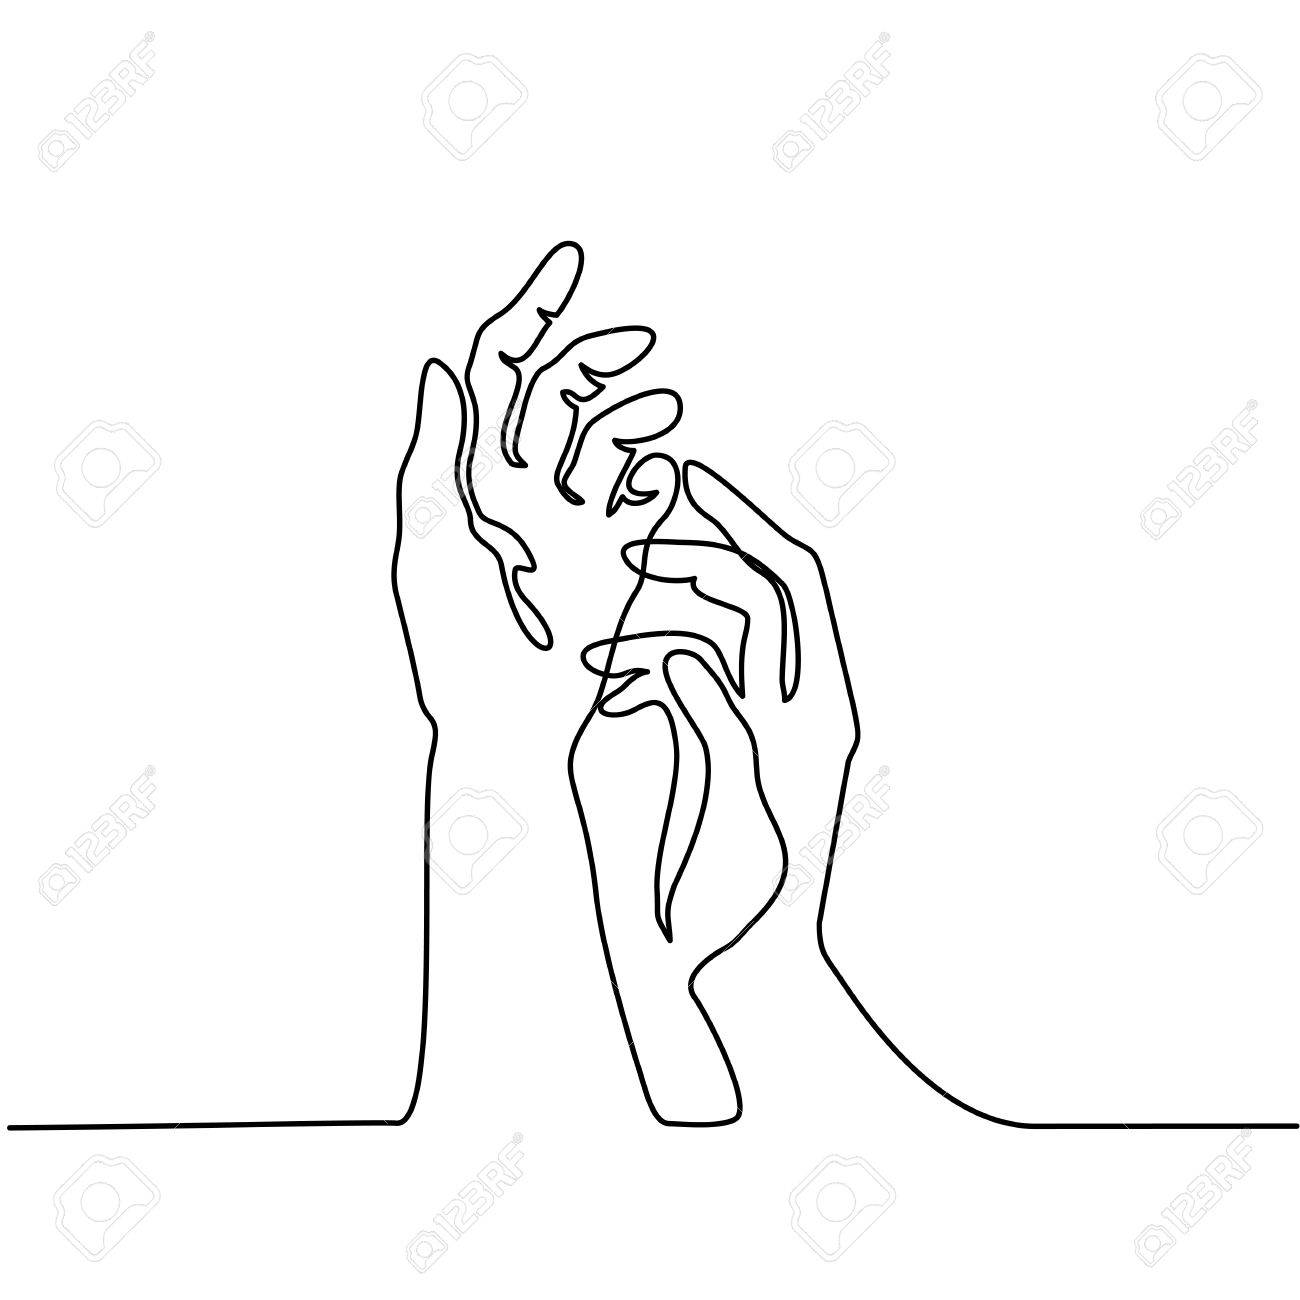 hands line drawing at getdrawings com free for personal sad boy clipart images sad and happy boy clipart